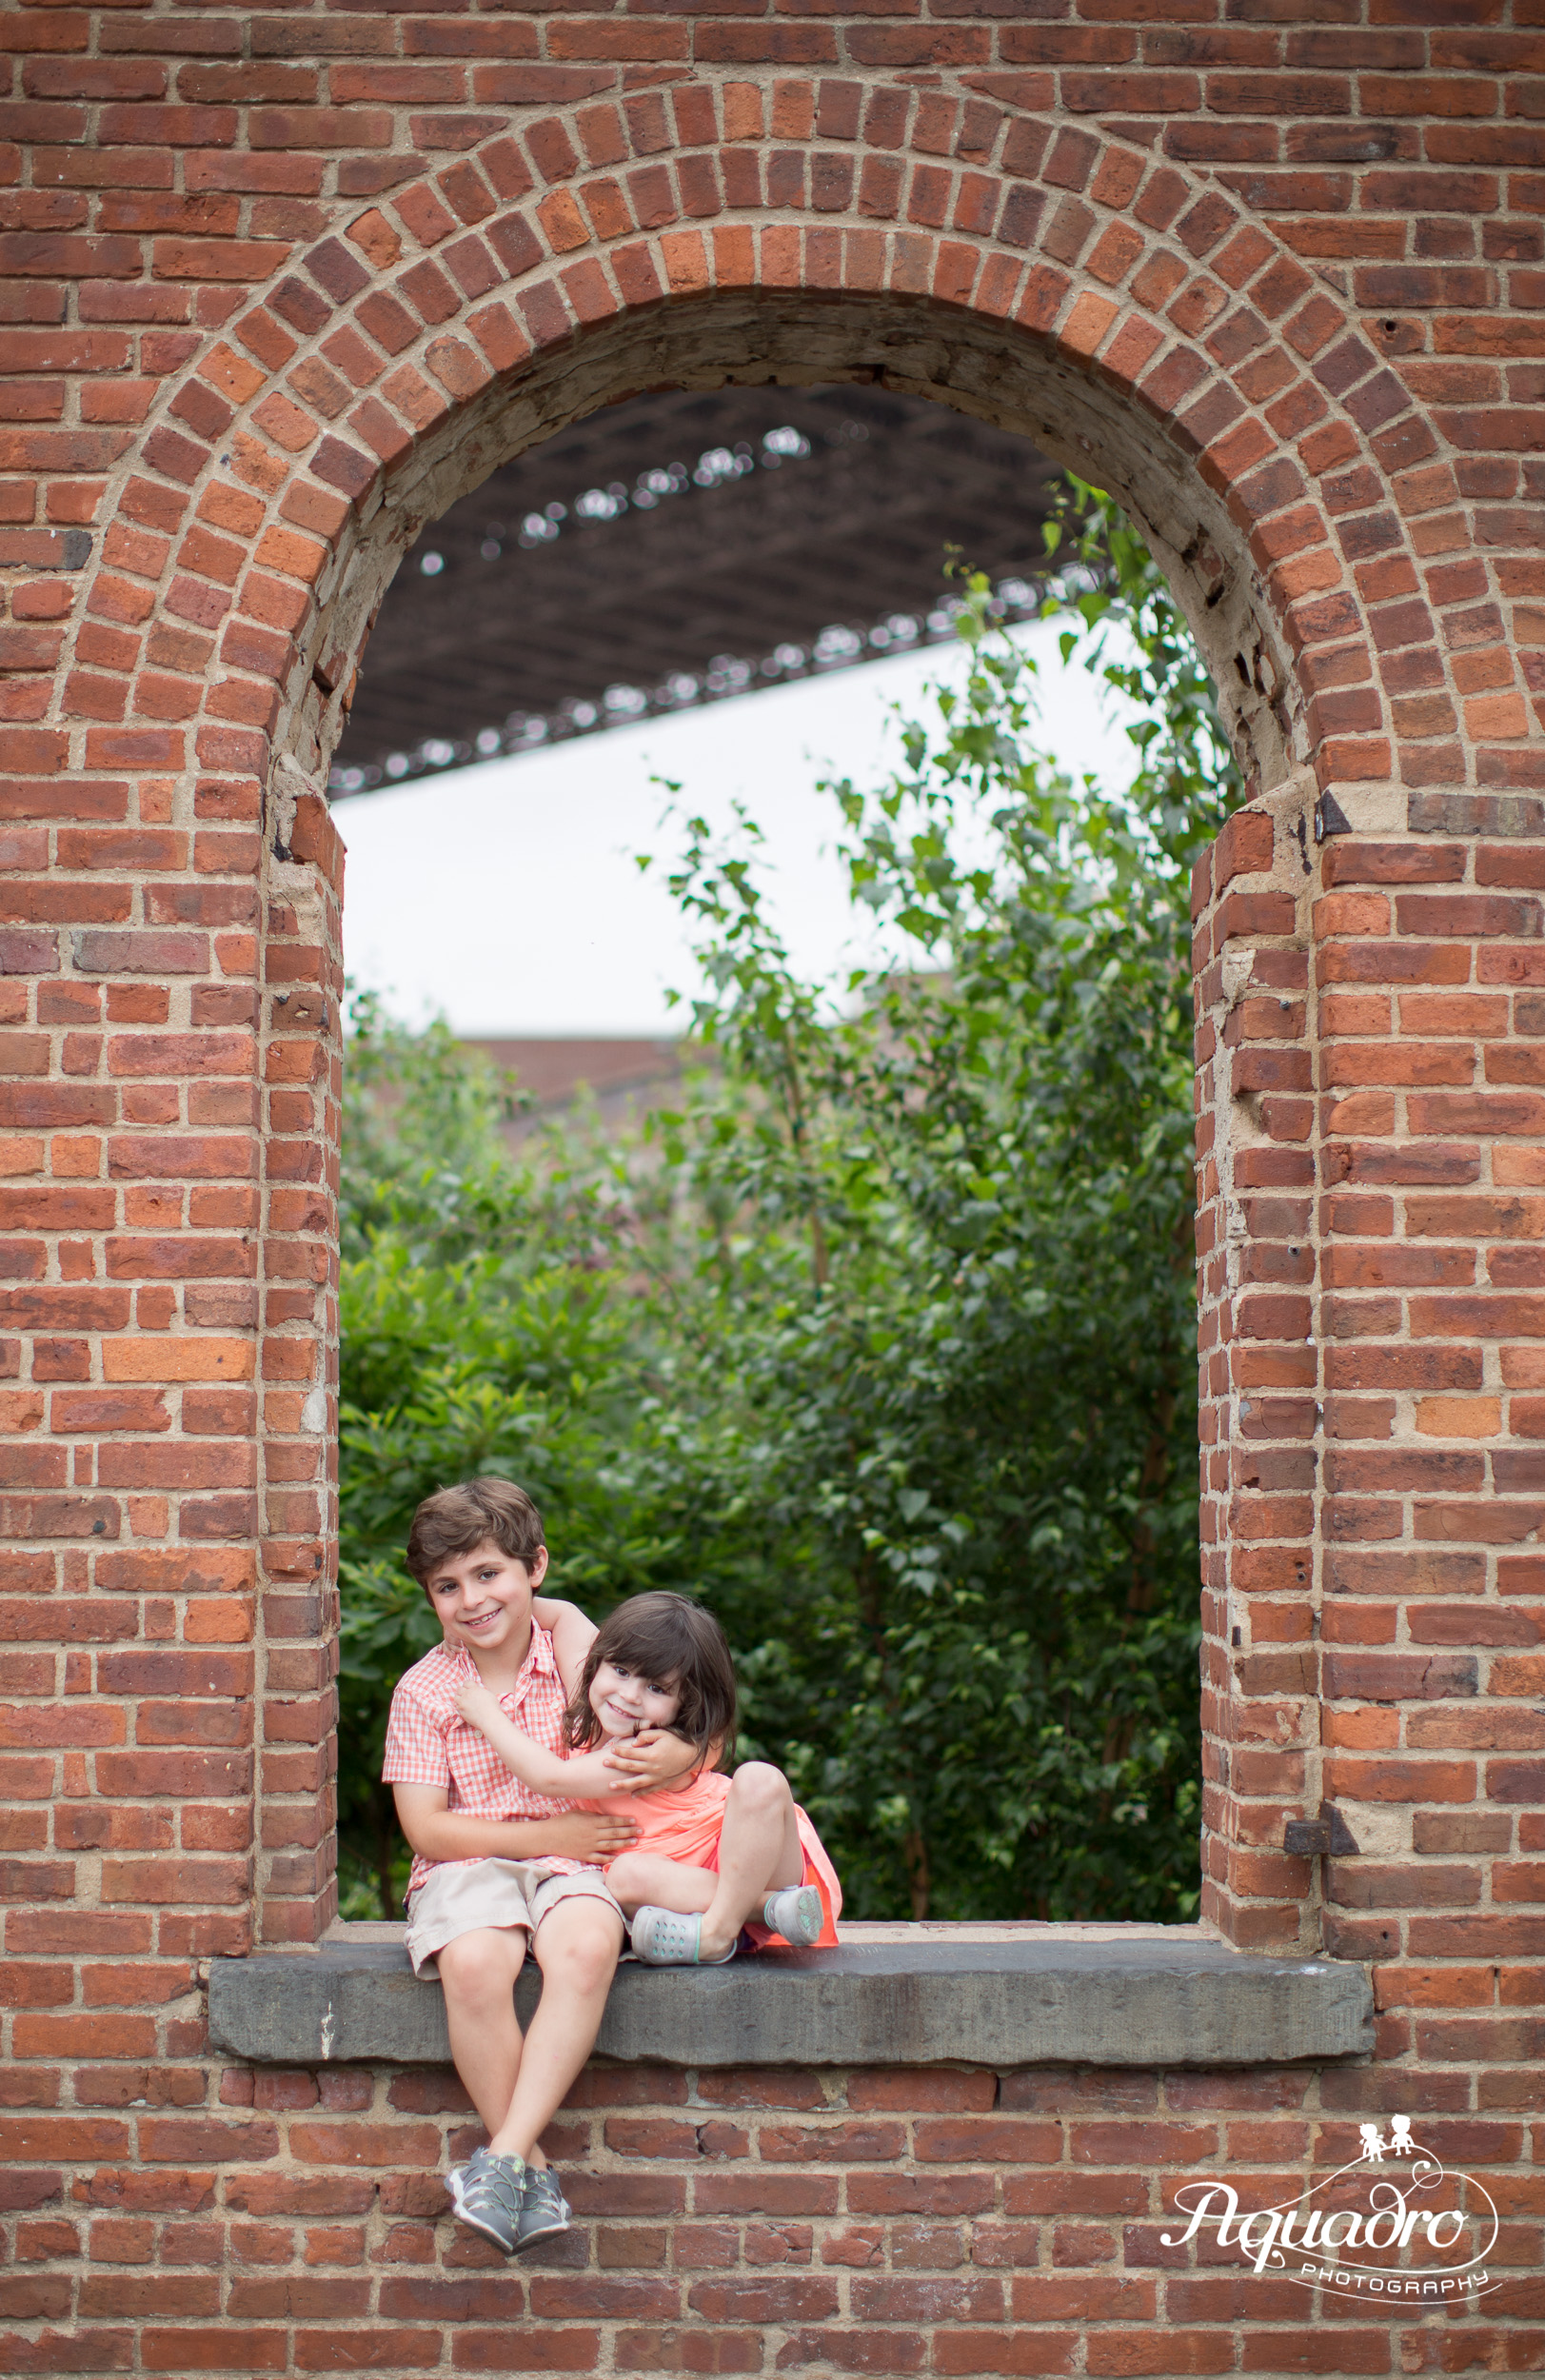 Brother and sister hug each other in the brick archway of St. Ann's Warehouse during a rainy family photo mini session in Brooklyln Bridge Park